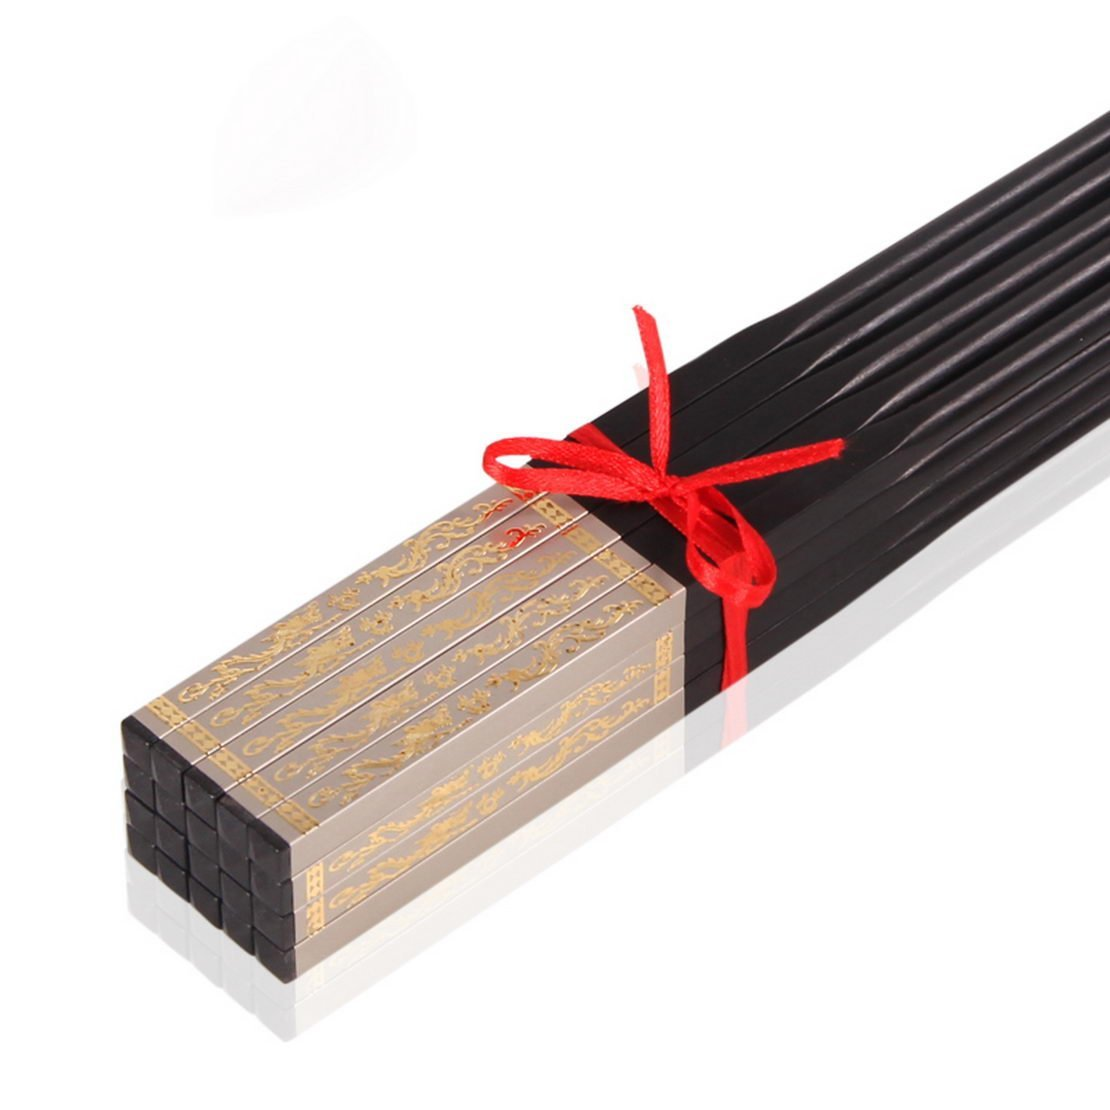 Black Ebony wood chopsticks, Chinese chopsticks home solid wood chopsticks Family Pack retro double mounted ebony chopsticks, wood chopsticks chopsticks, chopsticks Chinese chopsticks,